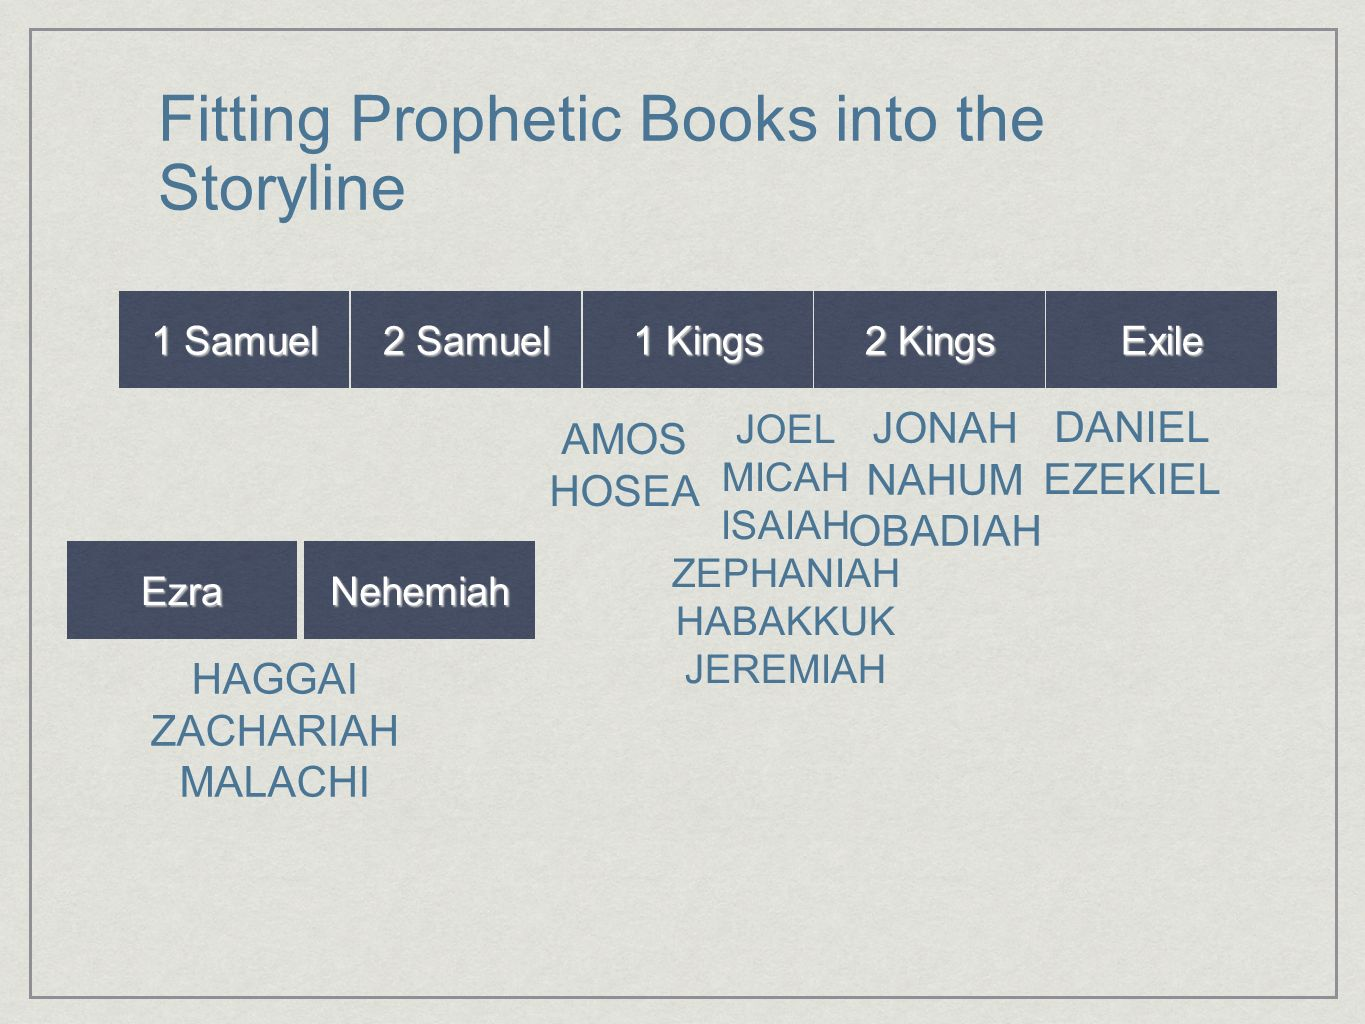 Fitting Prophetic Books into the Storyline